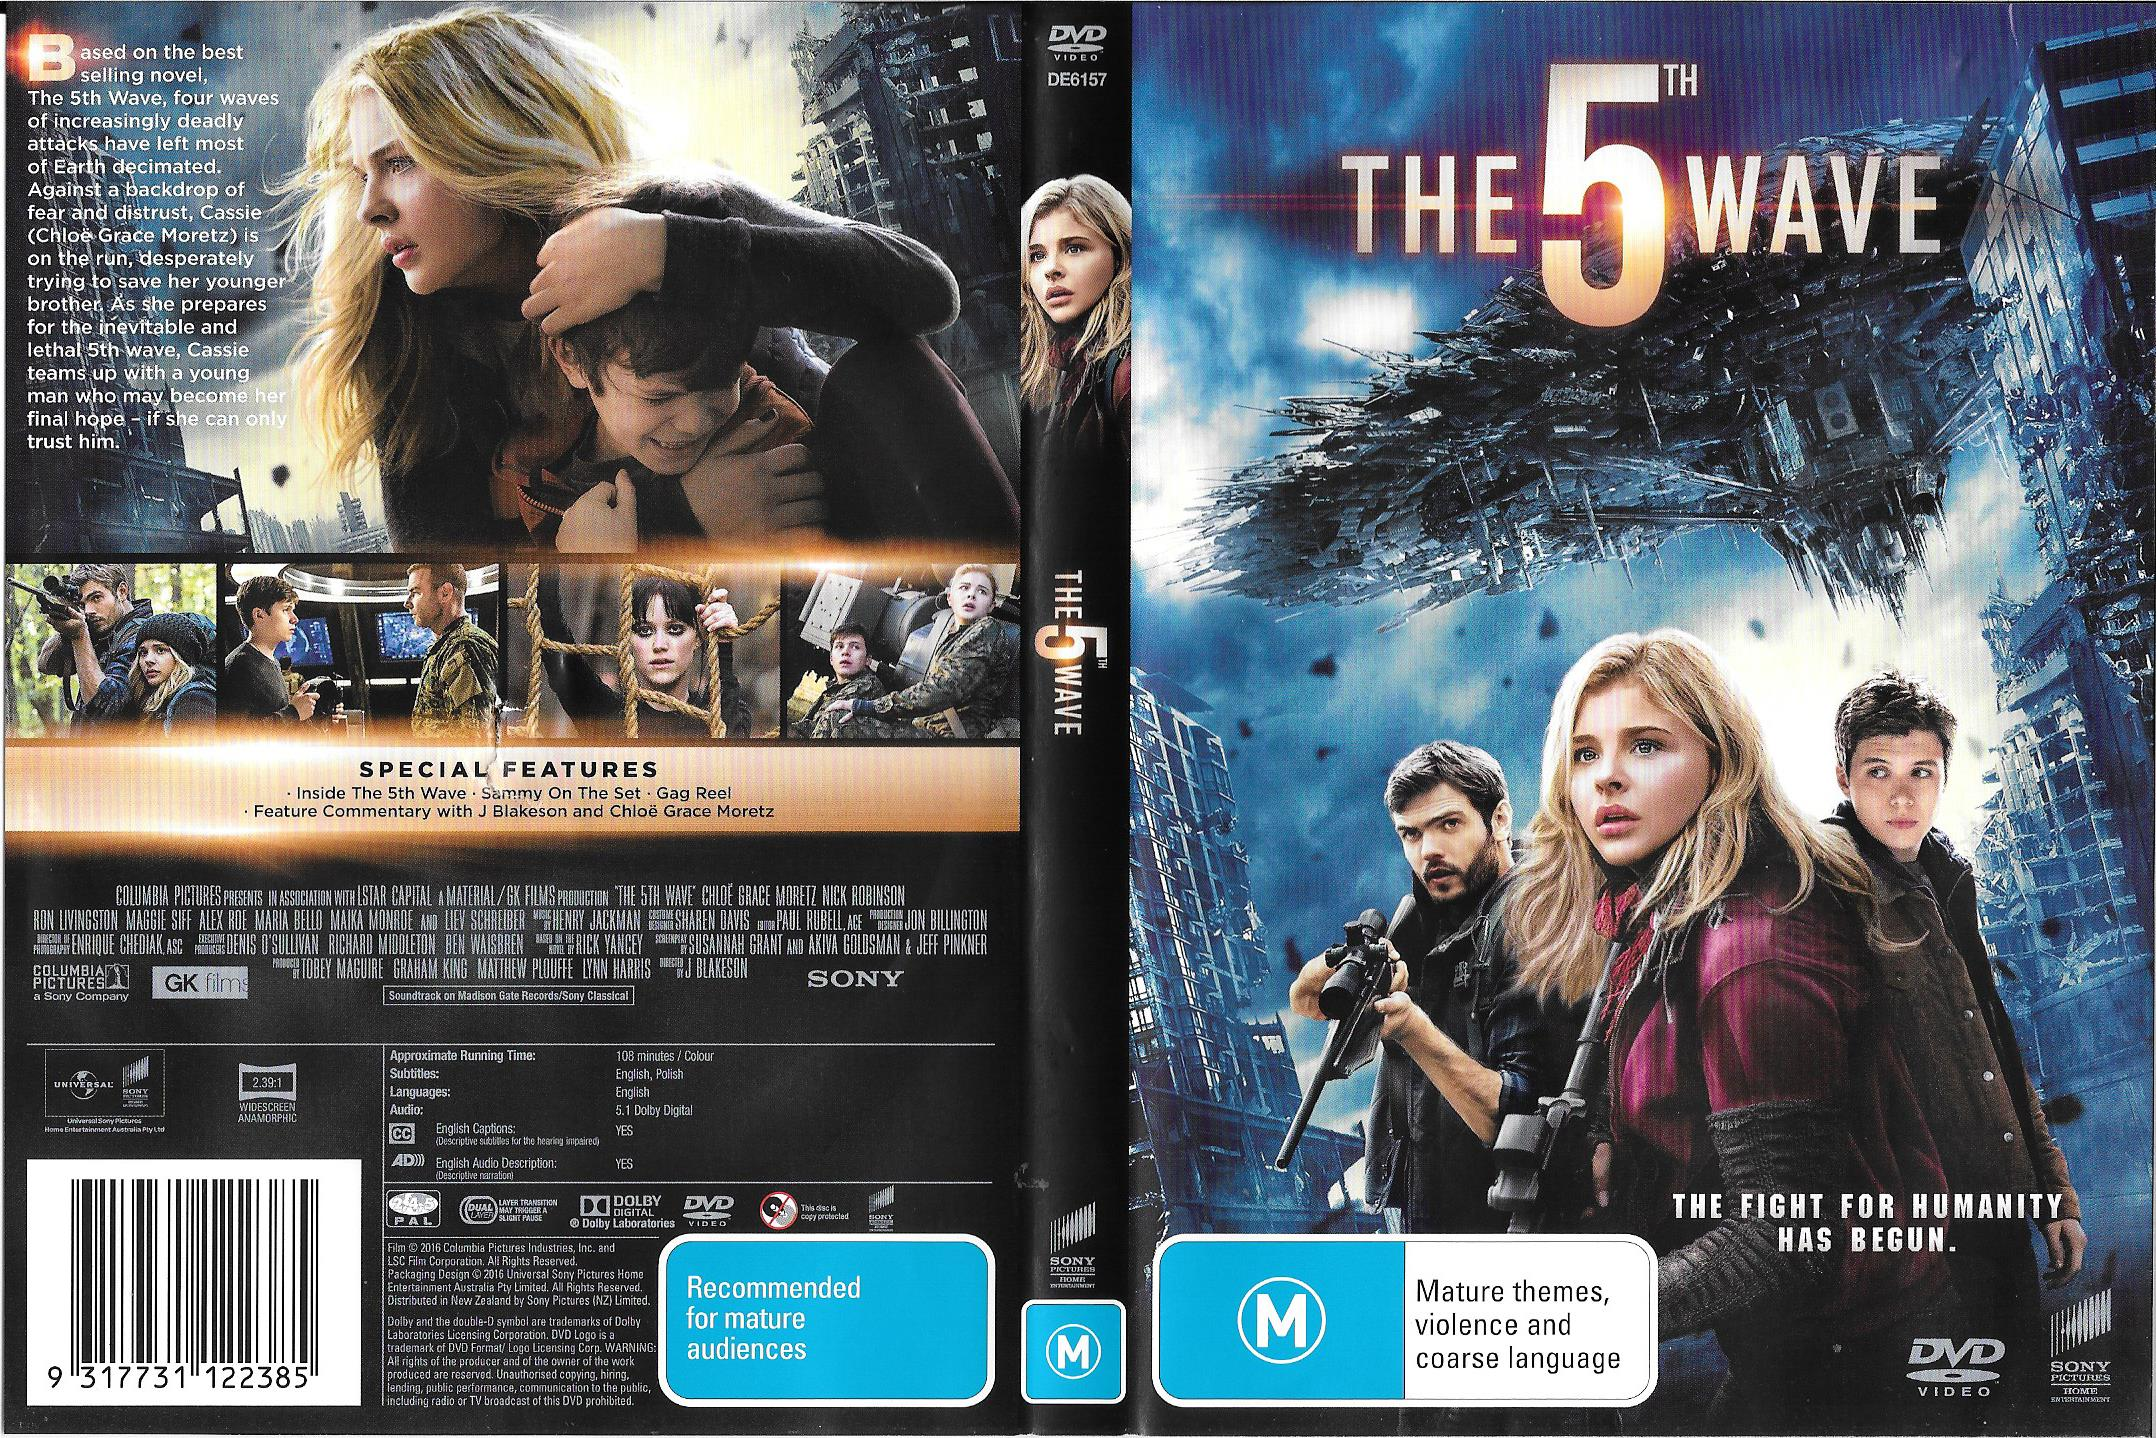 The 5th Wave (2016) : Front   DVD Covers   Cover Century